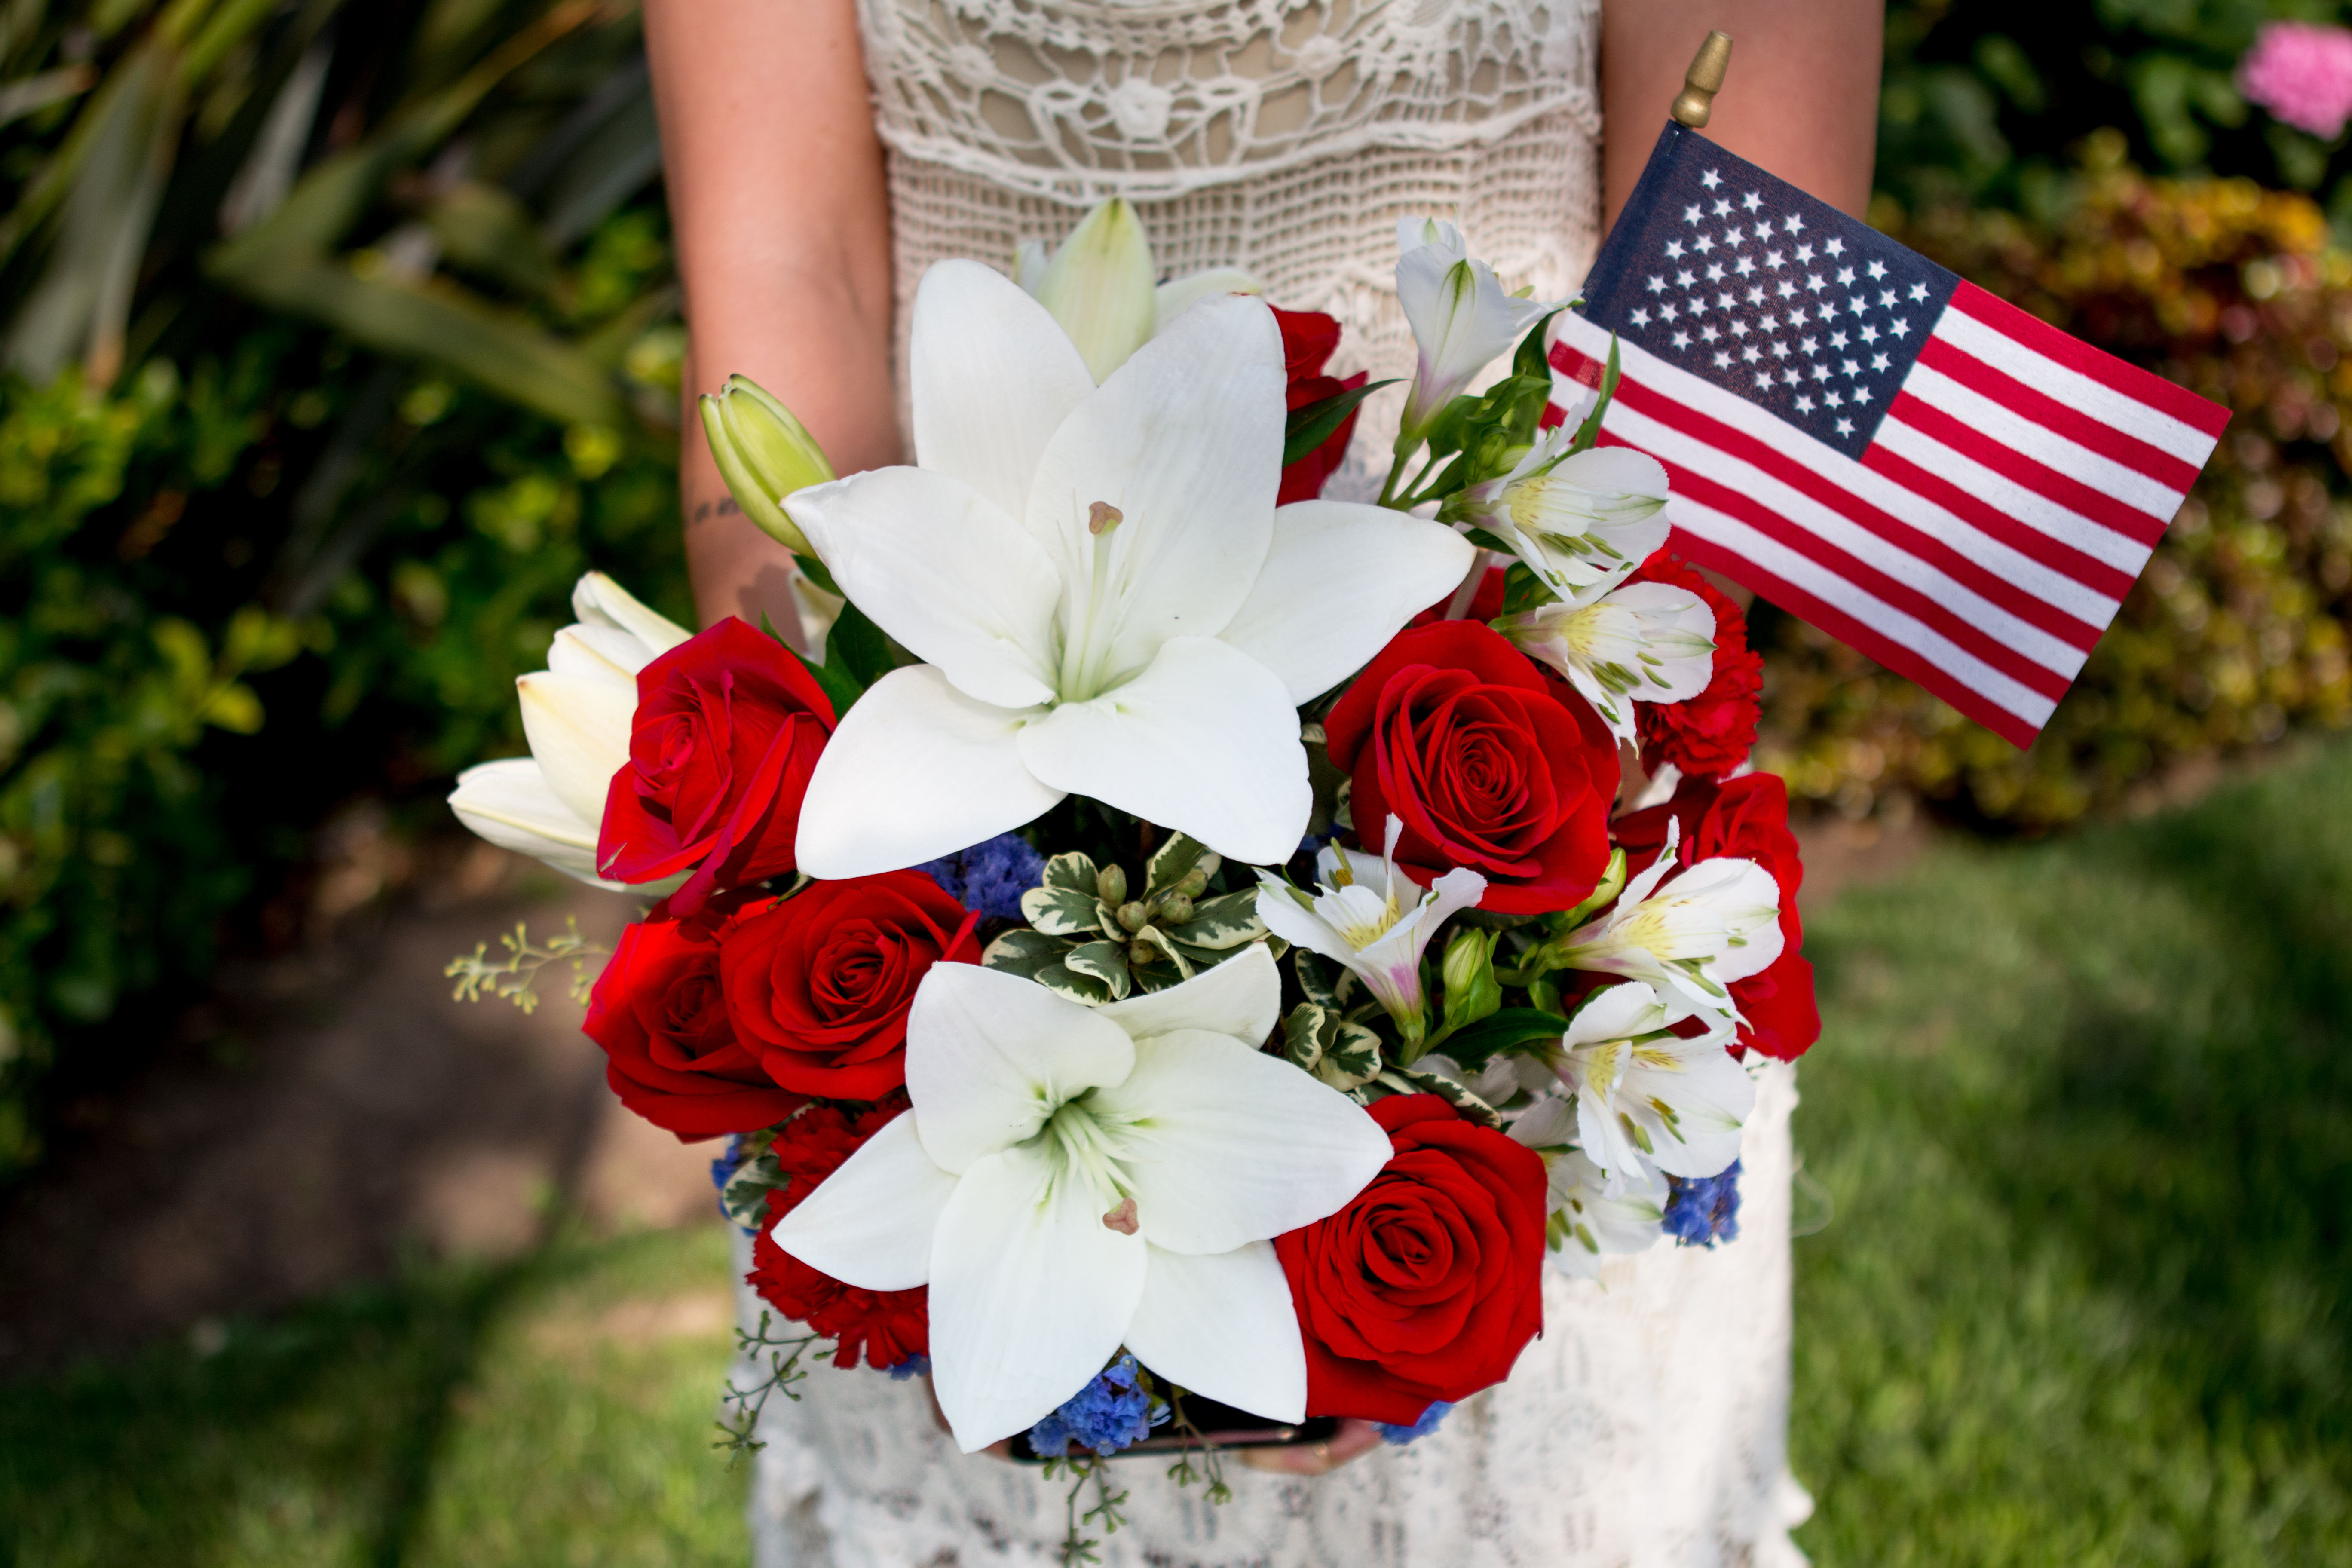 white lilies, red roses, and more in a lady's hands with an American flag